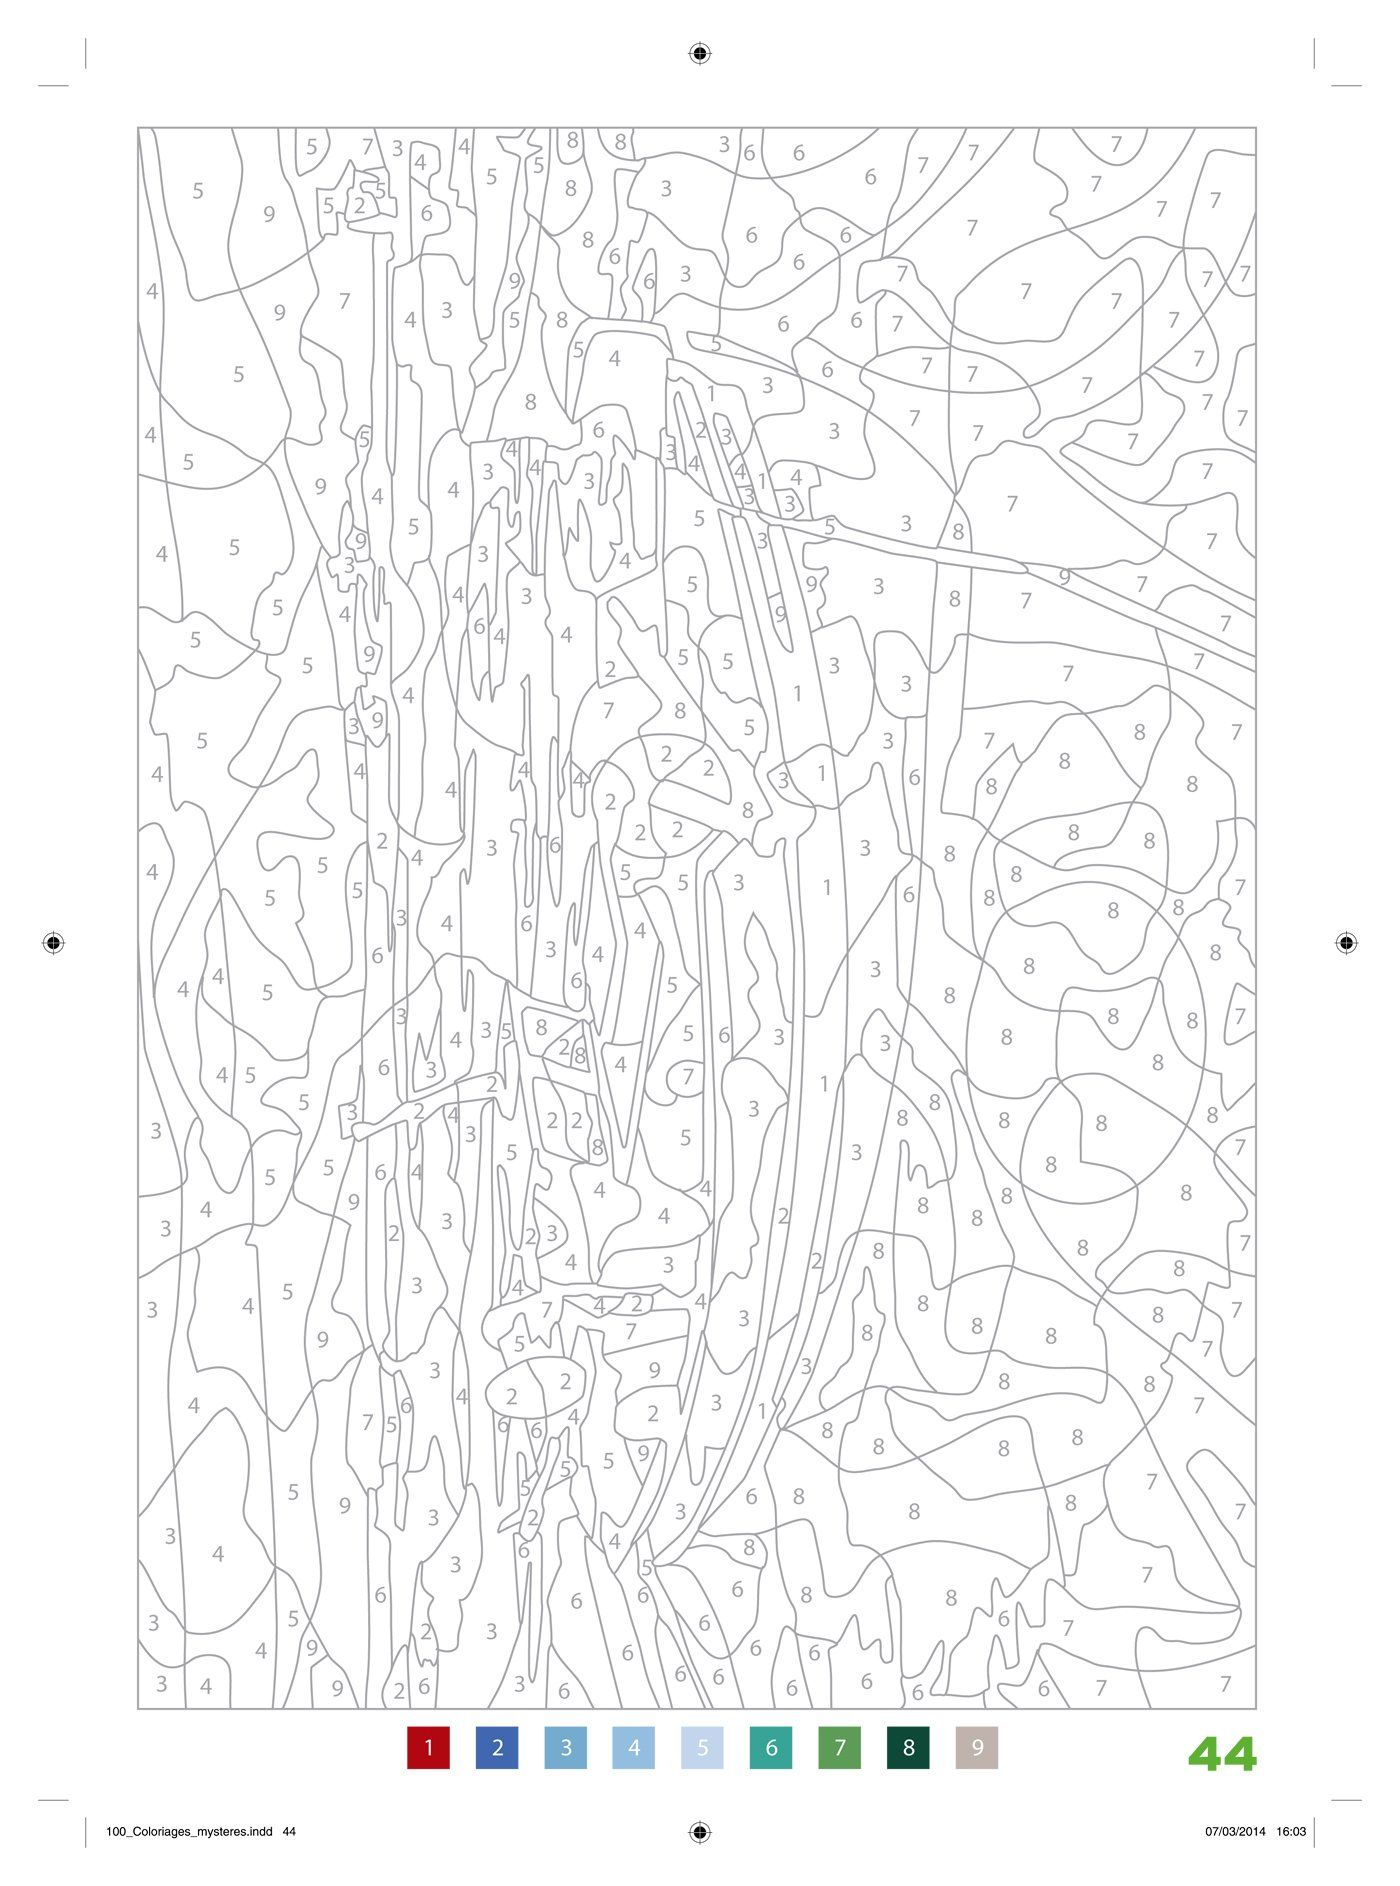 Coloriage Mystere Disney Tome 4 : coloriage, mystere, disney, 81QT66OYl8L.jpg, (1400×1886), Color, Number, Printable,, Mandala, Coloring, Pages,, Pattern, Pages